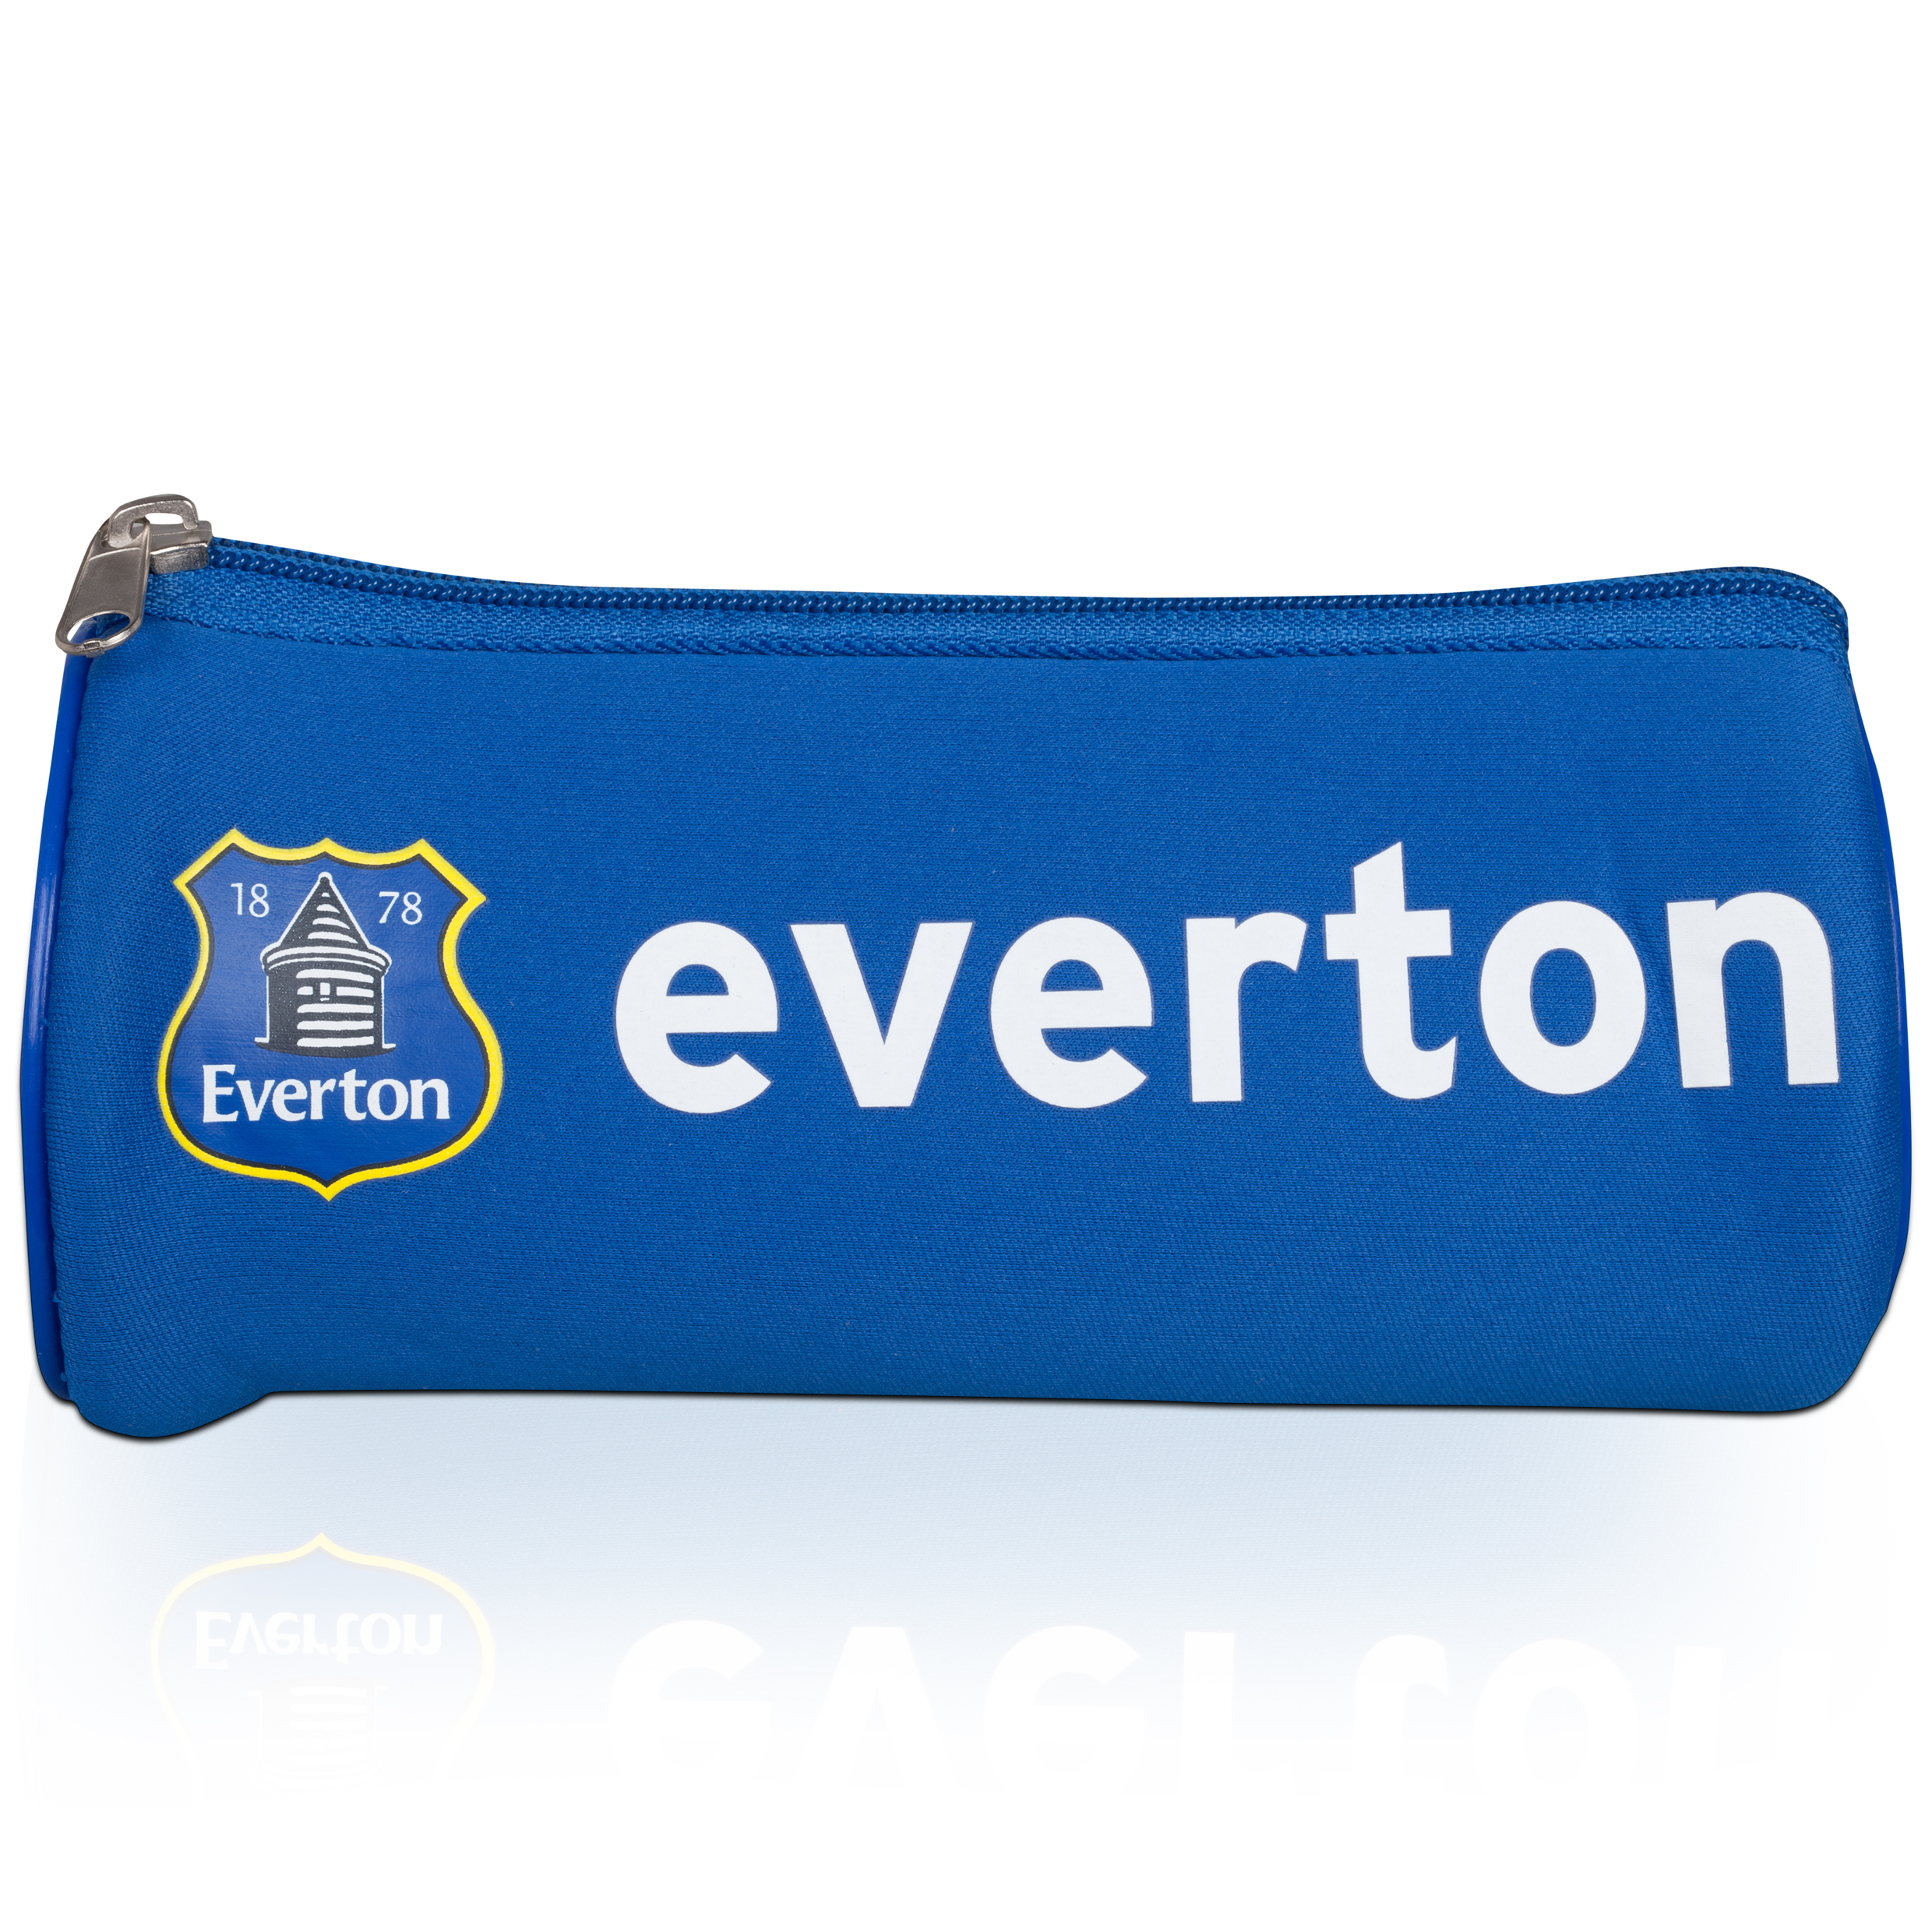 Everton Turbo Barrell Pencil Case